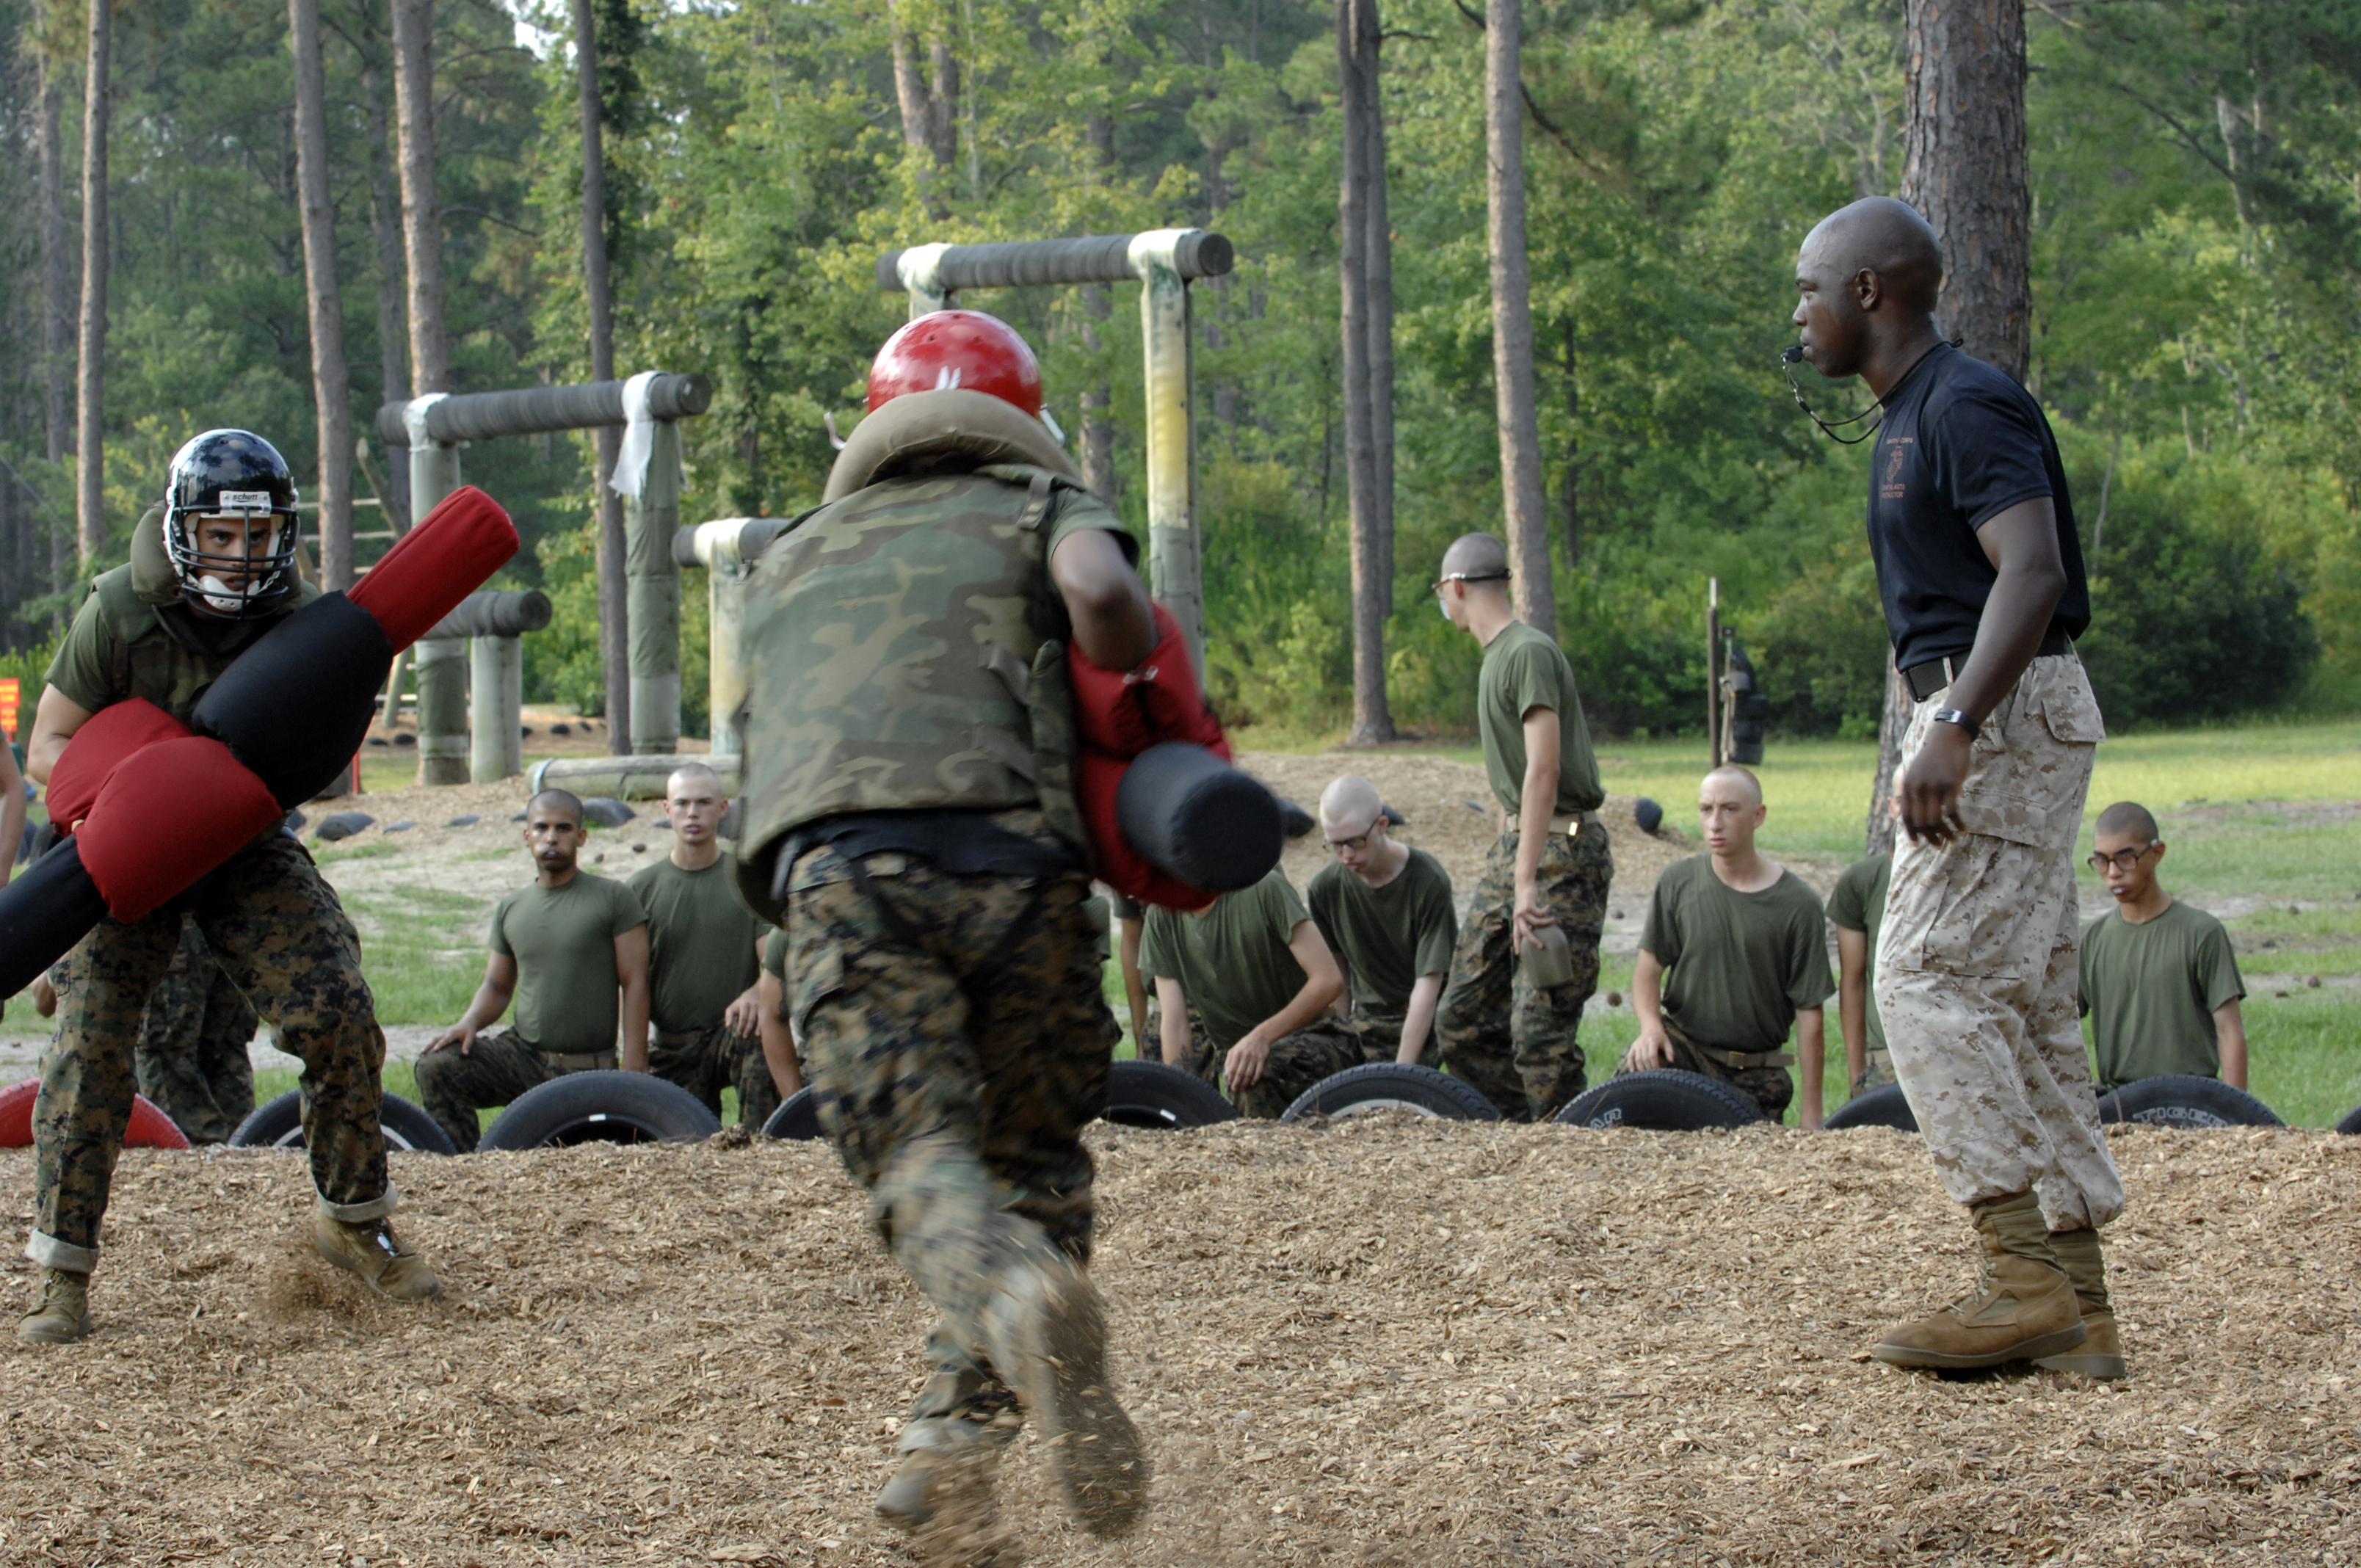 At Marine Corps Recruit Depot, Parris Island, Marine Corps recruits